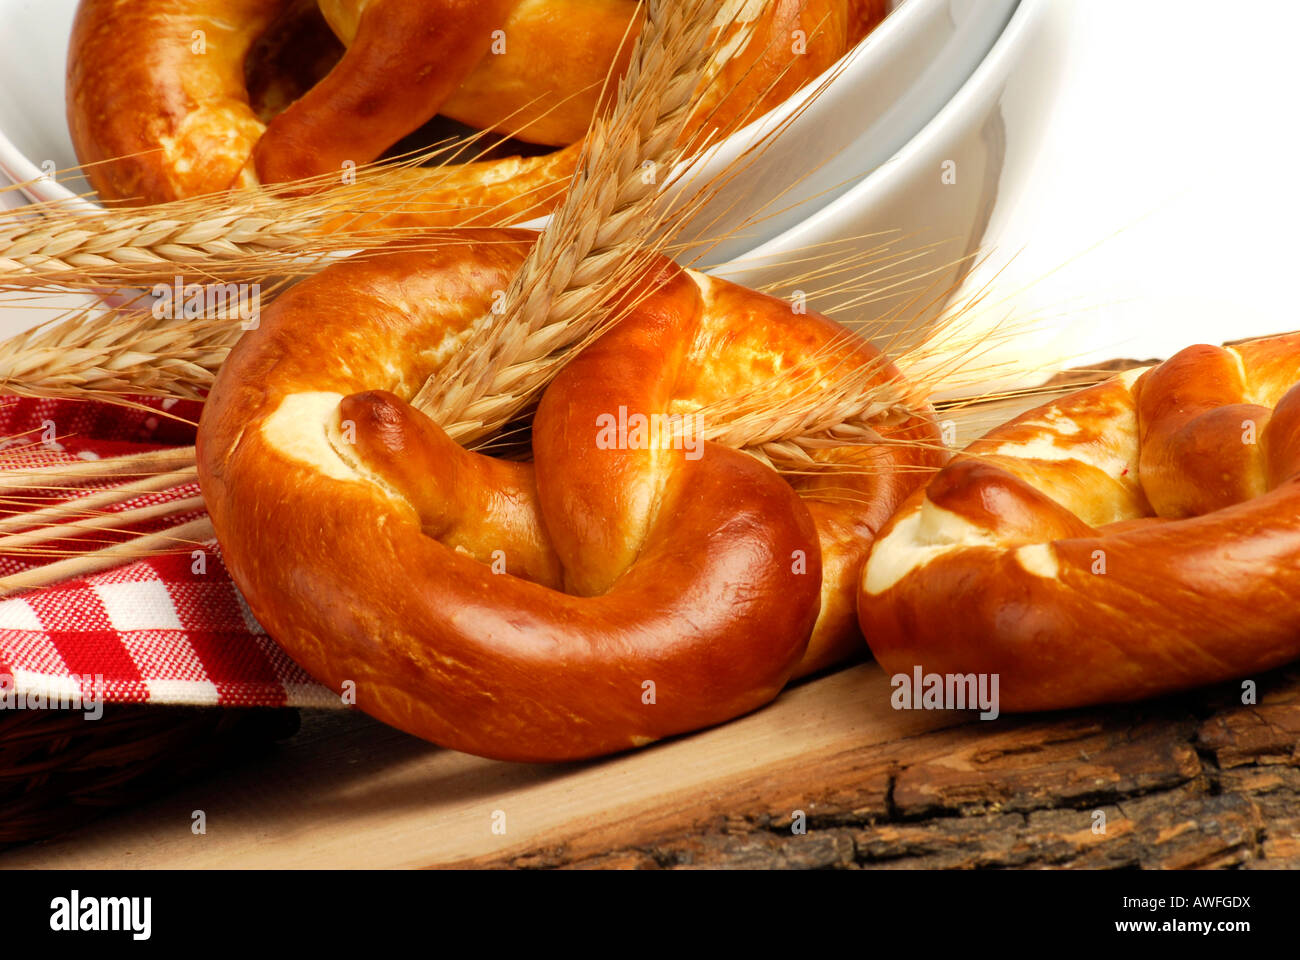 Lye pretzels and wheat spikes - Stock Image